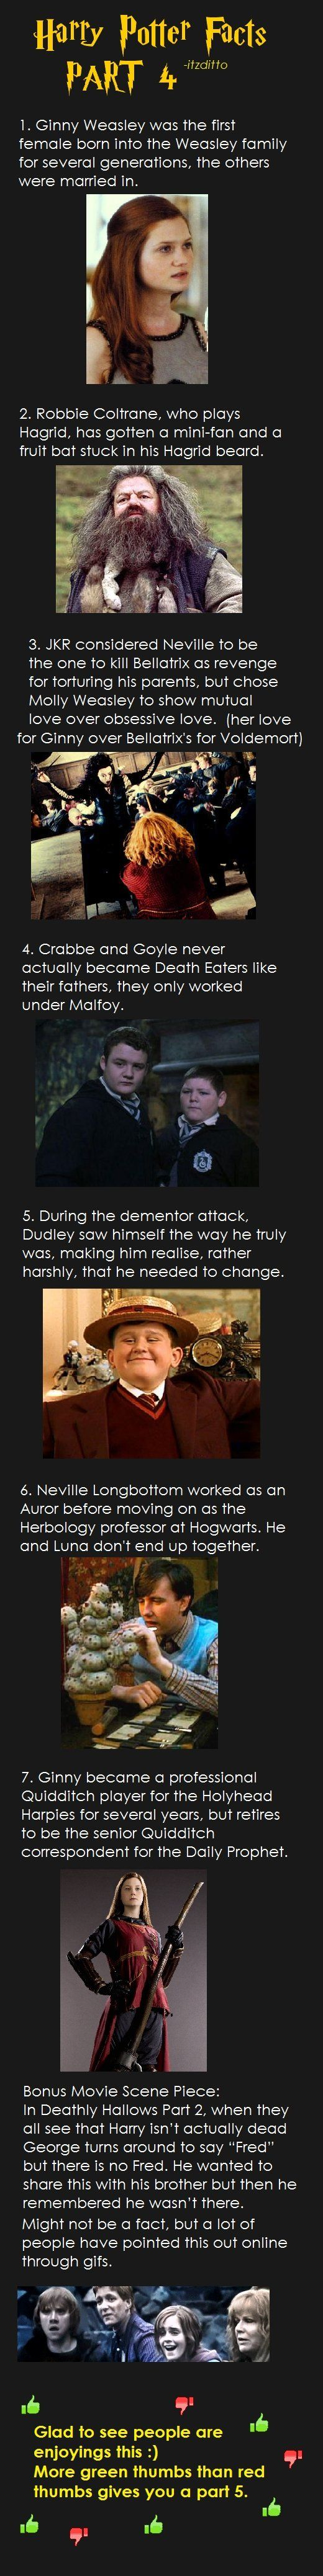 Harry Potter Facts Part 4 some interesting points, i would love at some point to verify!! But love the idea!